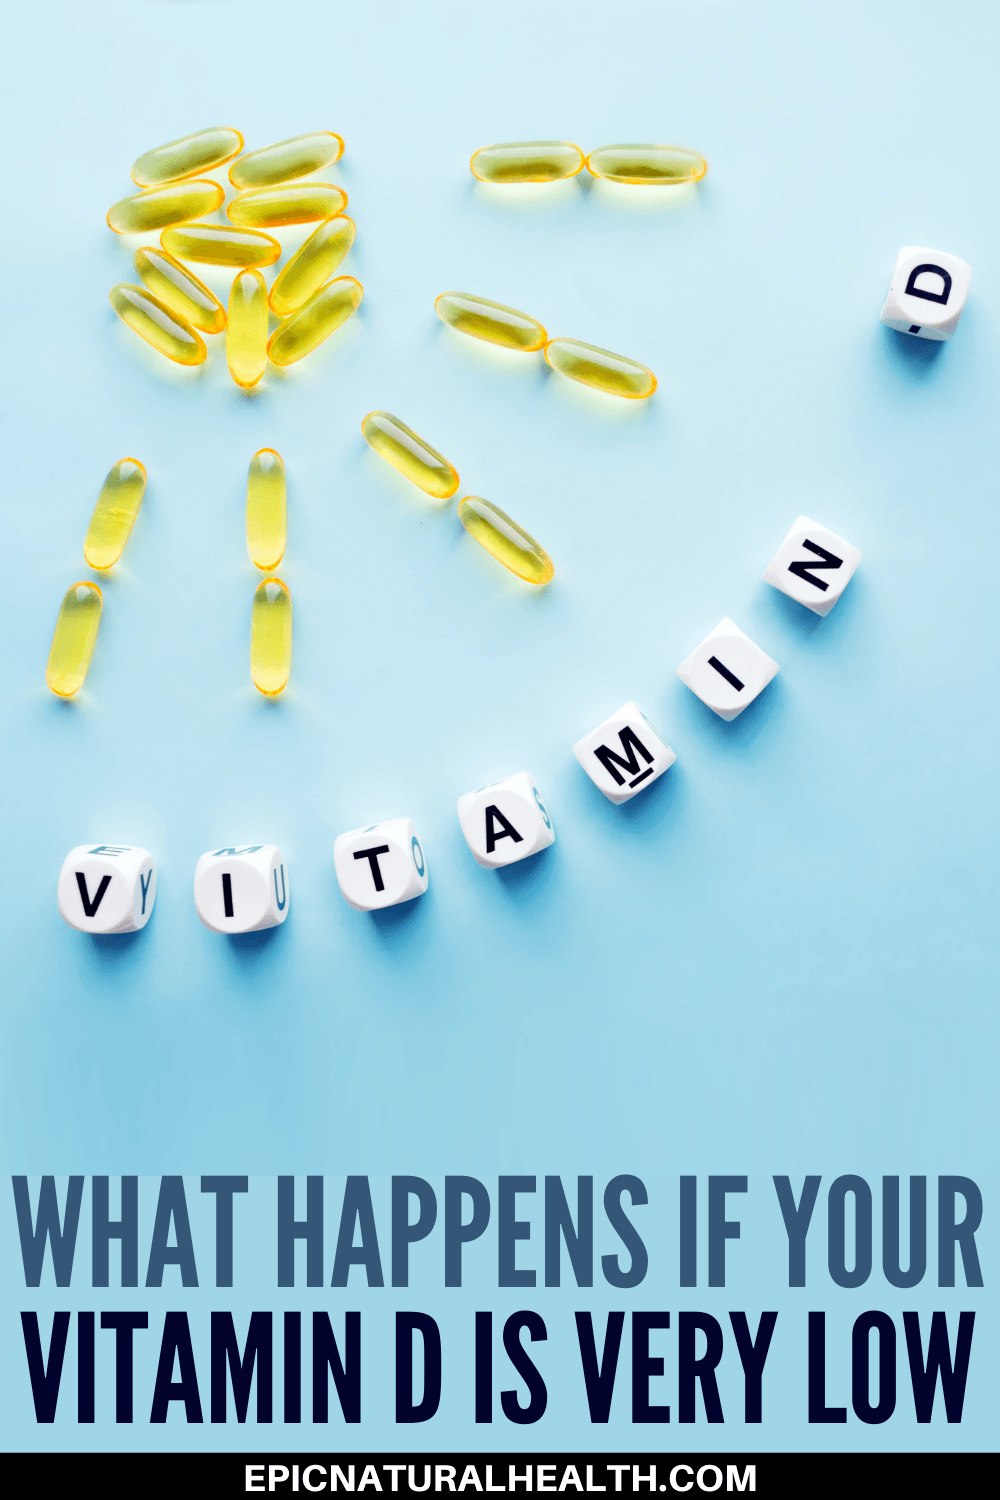 What happens if your vitamin D is very low